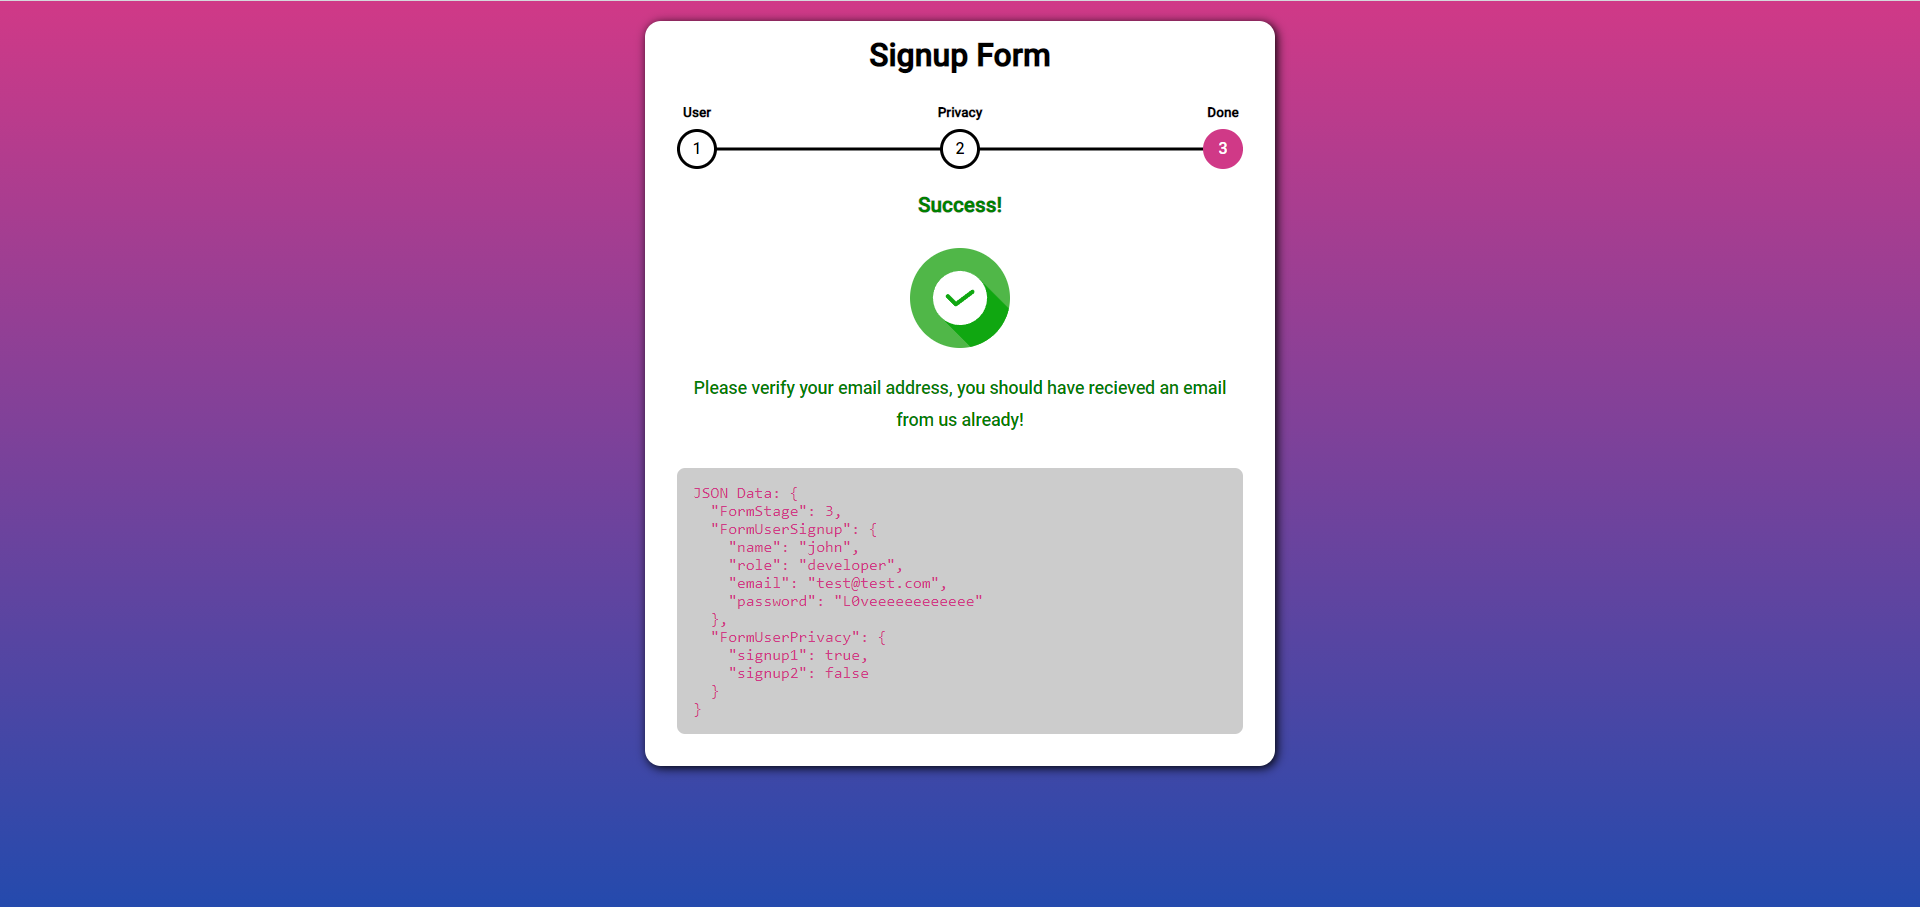 Component for Completion Page